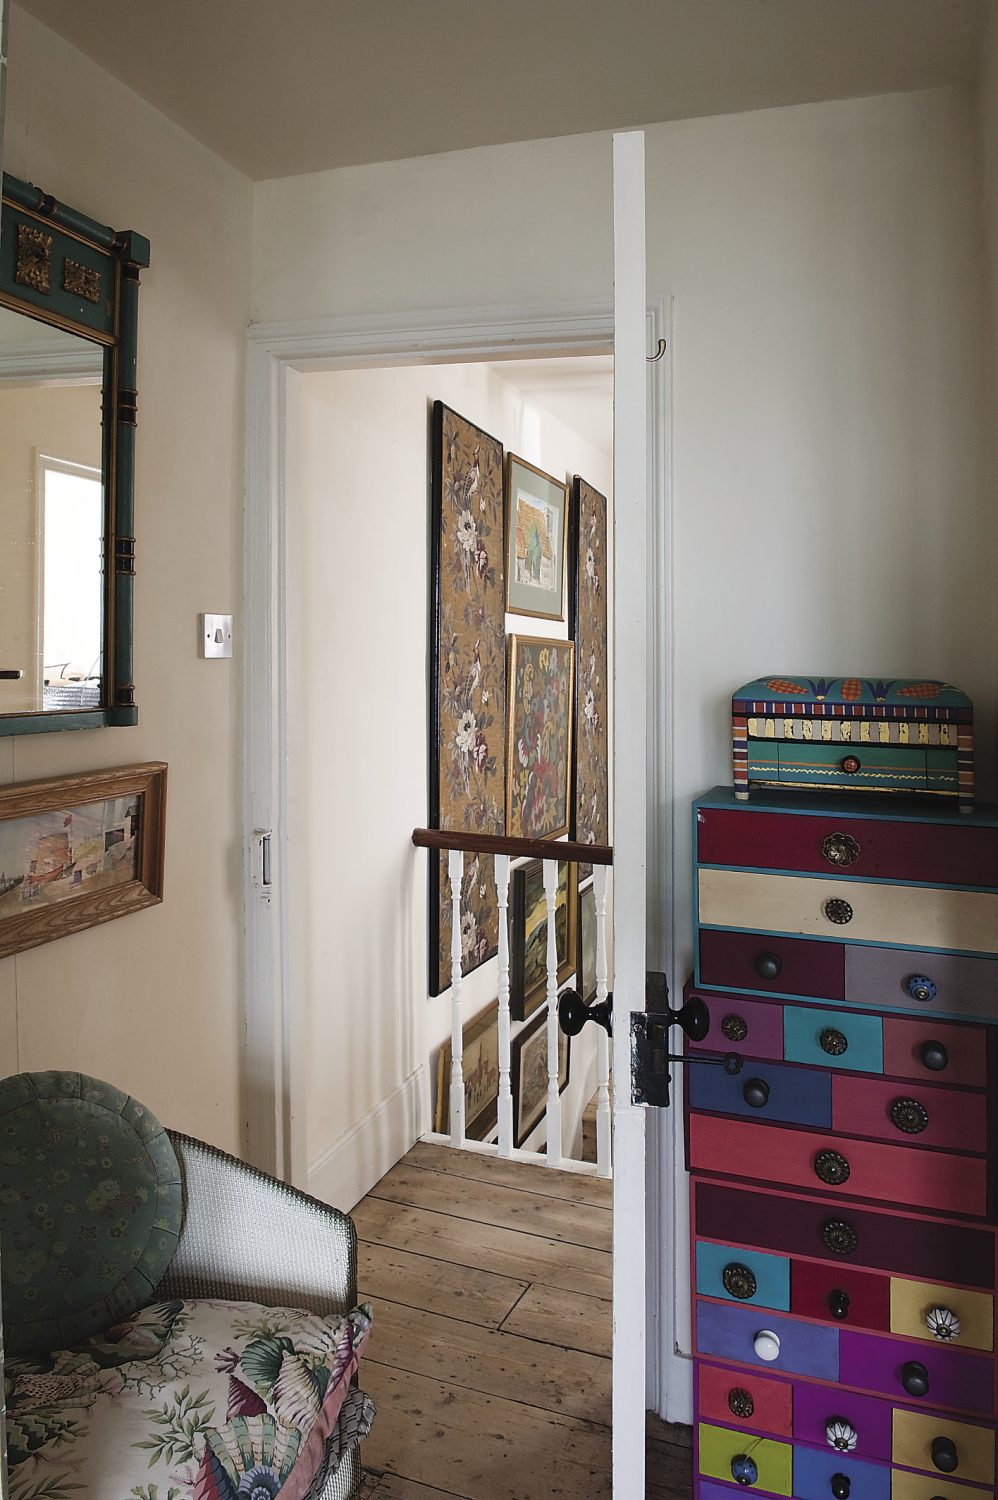 In one corner of the bedroom, Helen has stacked four sets of small chests of drawers that she colour-coded according to her beads